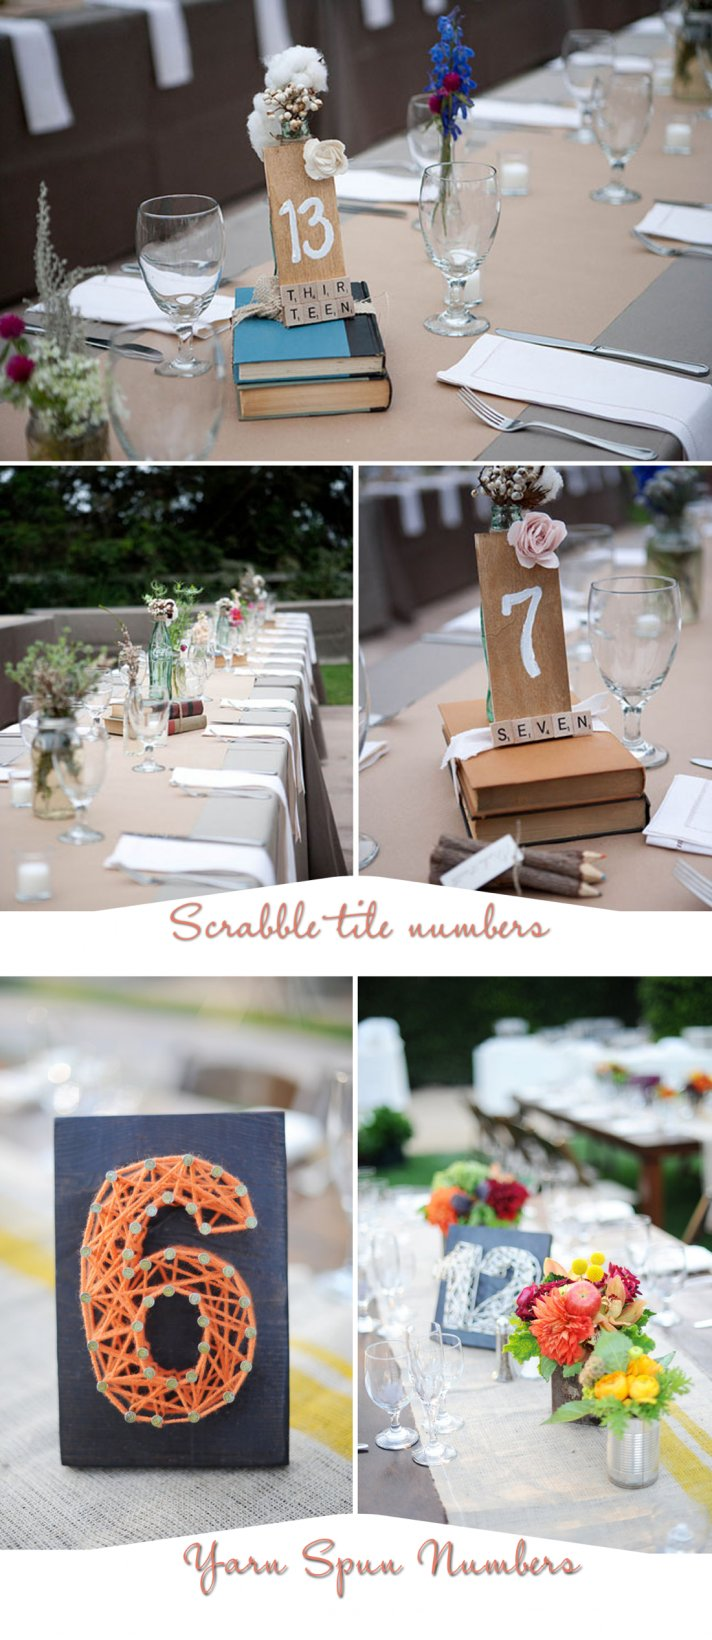 unique wedding reception table number ideas- scrabble tiles and homespun yarn